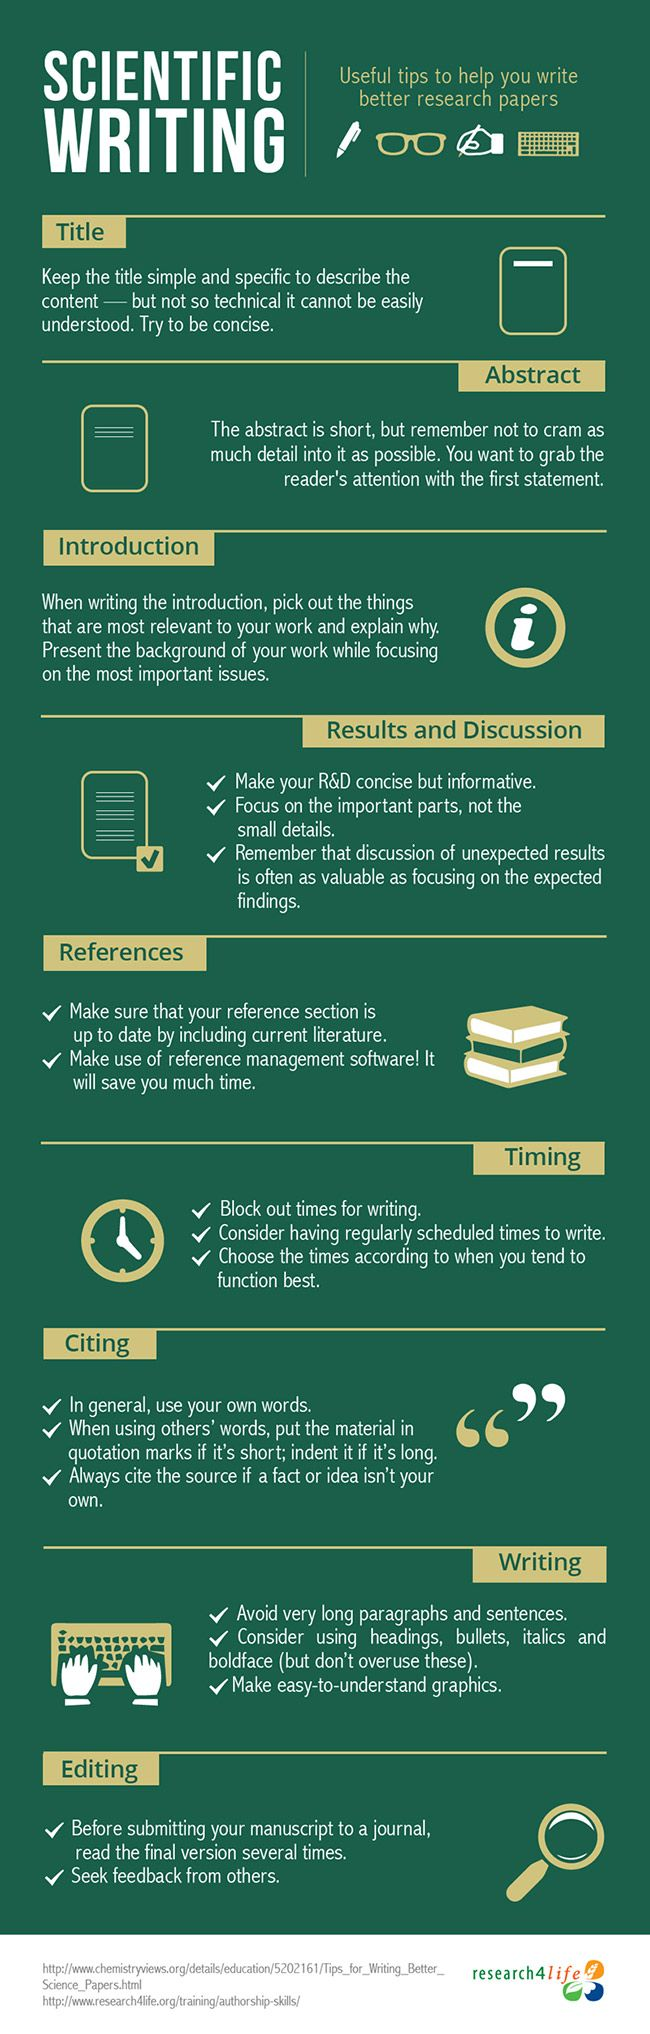 Essay On High School Experience Best Ideas About Scientific Writing Academic Infographic How To Write  Better Science Papers Elsevier Connect How To Write An Essay  Essay For High School Students also Mahatma Gandhi Essay In English How To Start A Science Essay How To Write A Synthesis Essay Steps  Essay On Terrorism In English